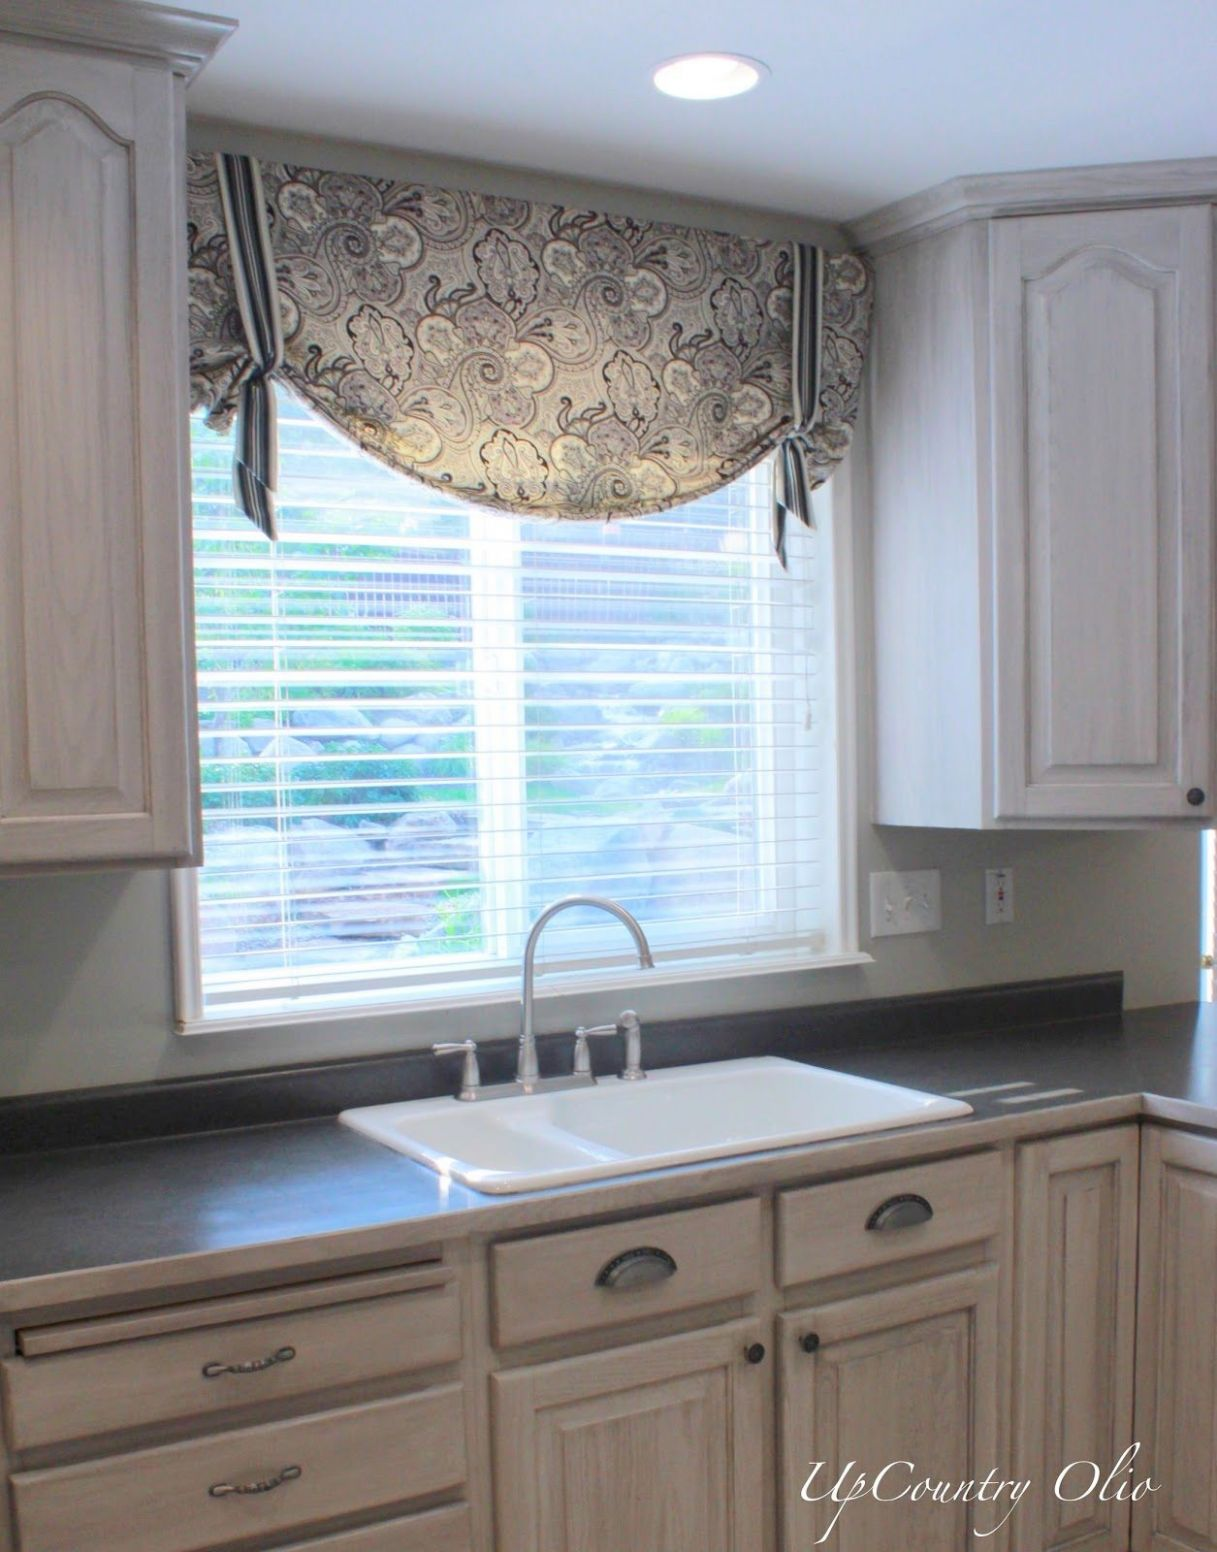 Kitchen valance idea (With images) | Kitchen window coverings ..